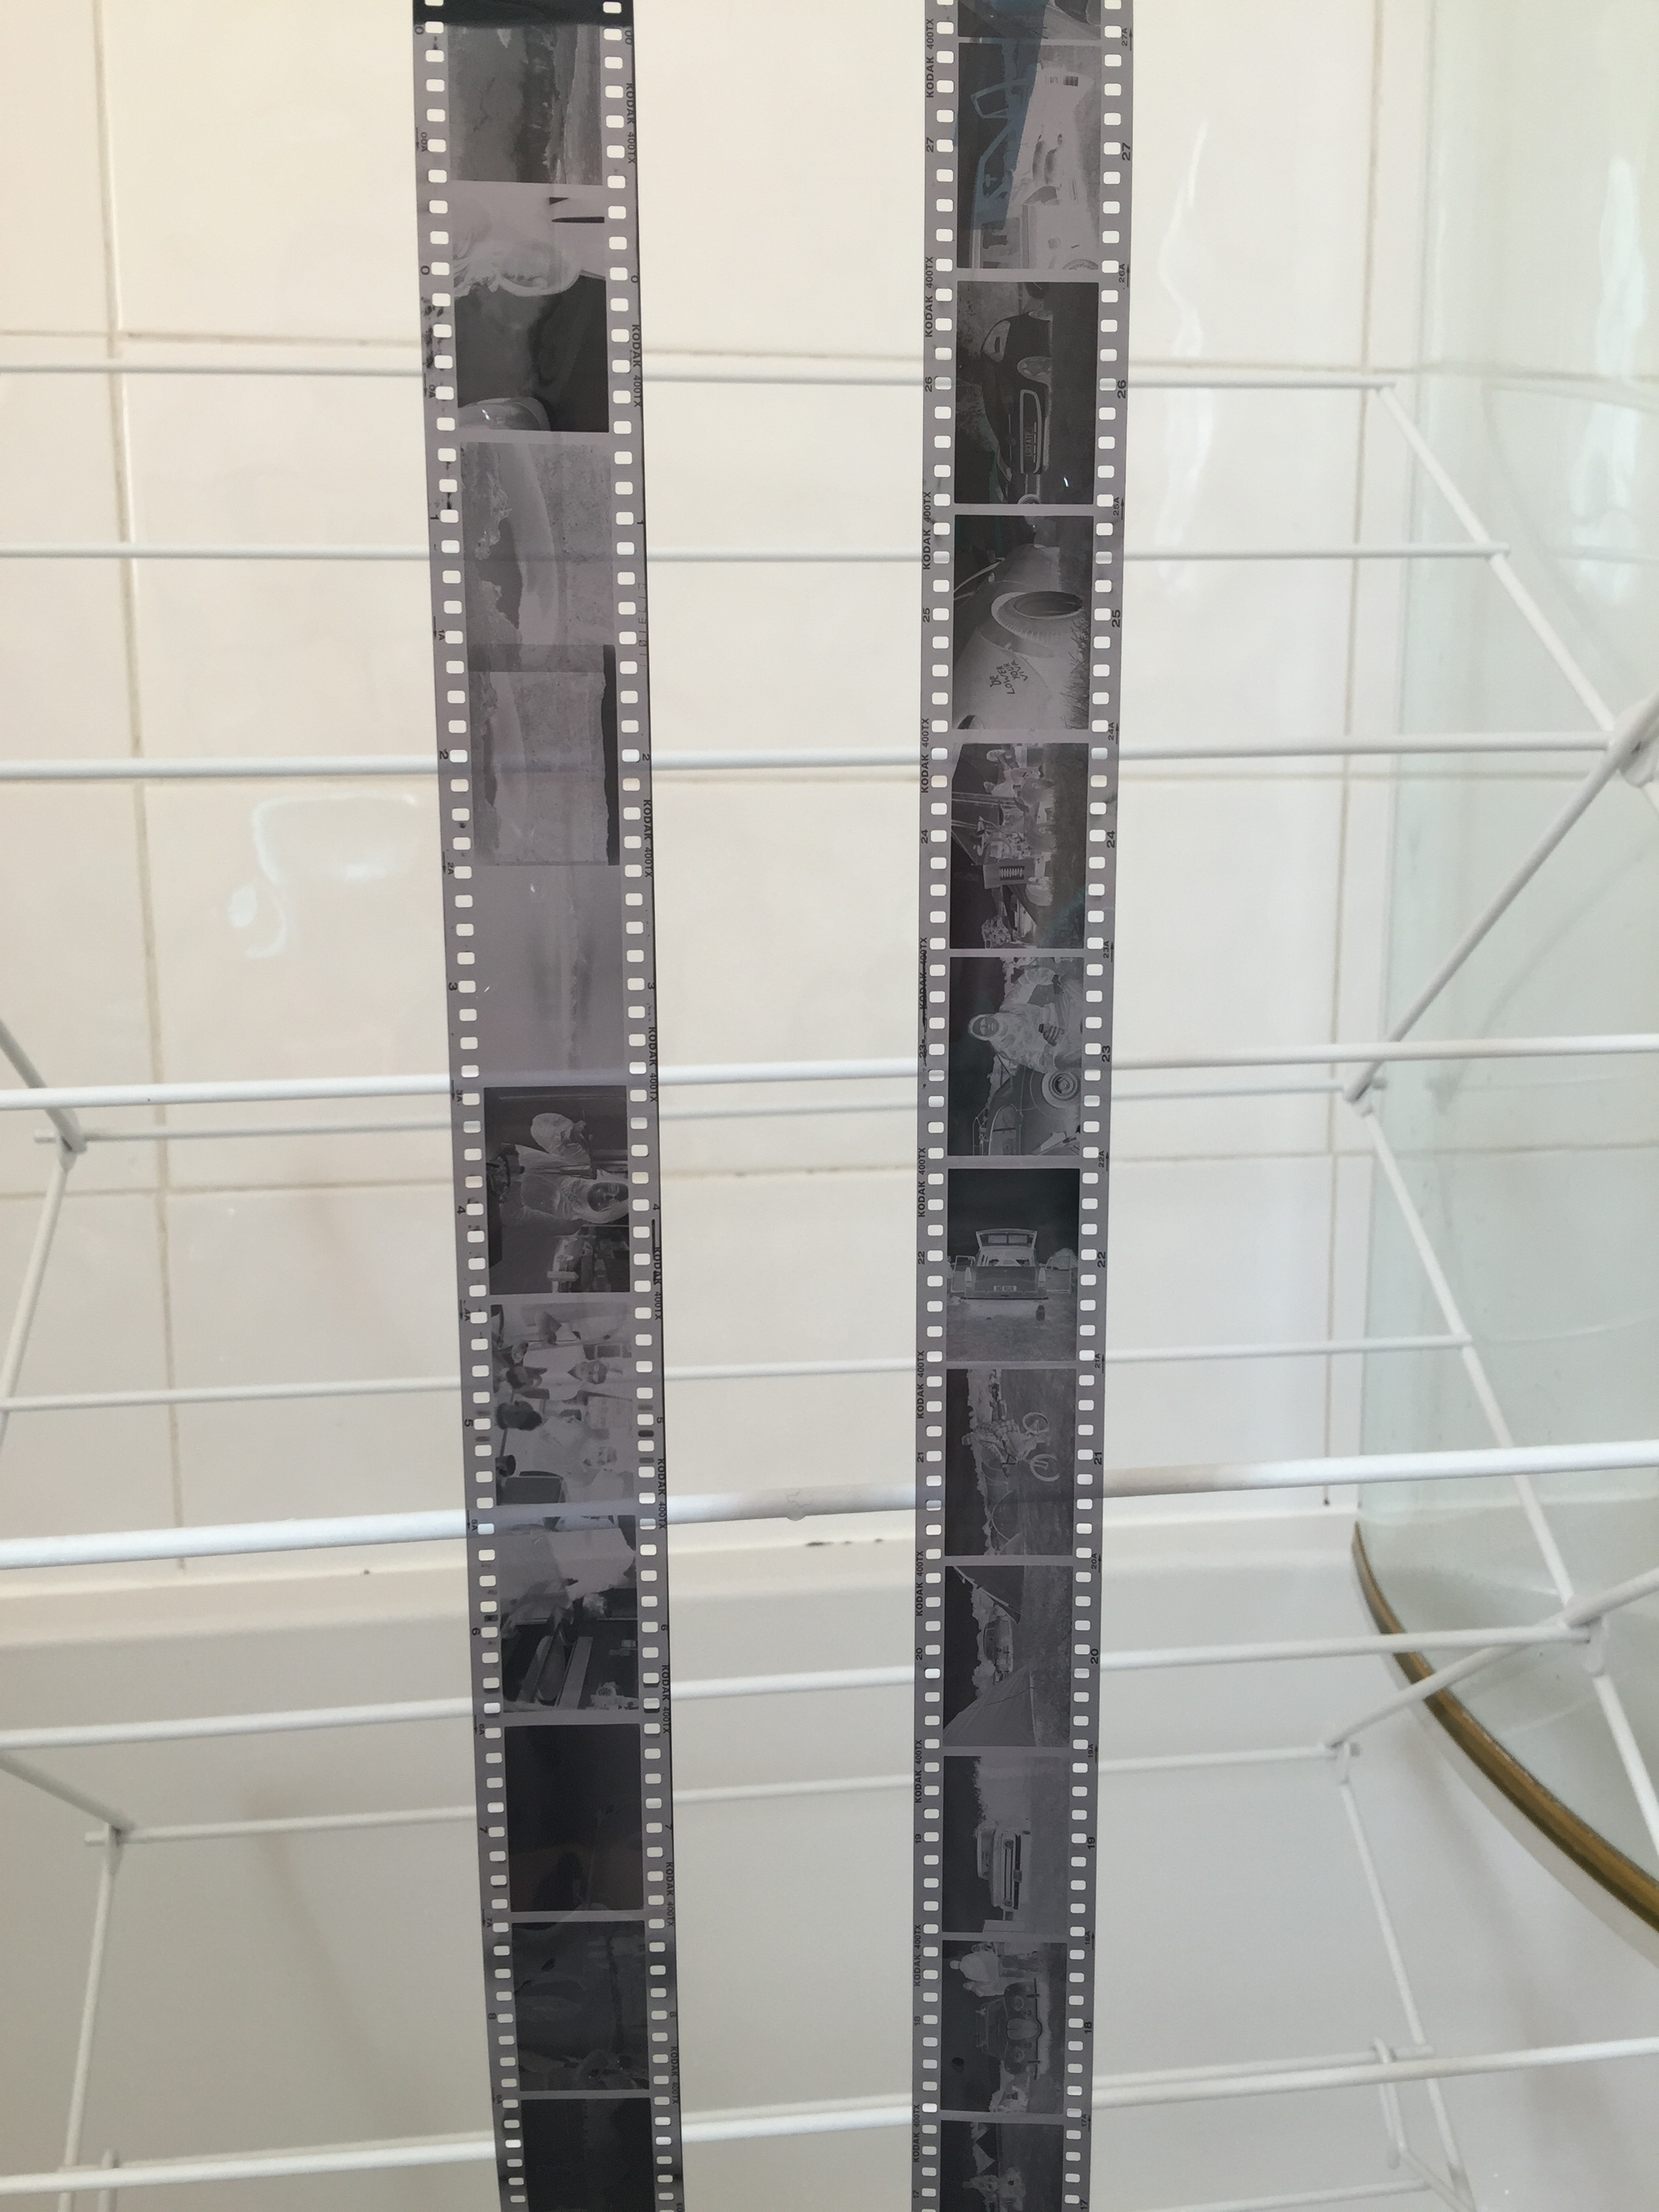 The developed film hang drying